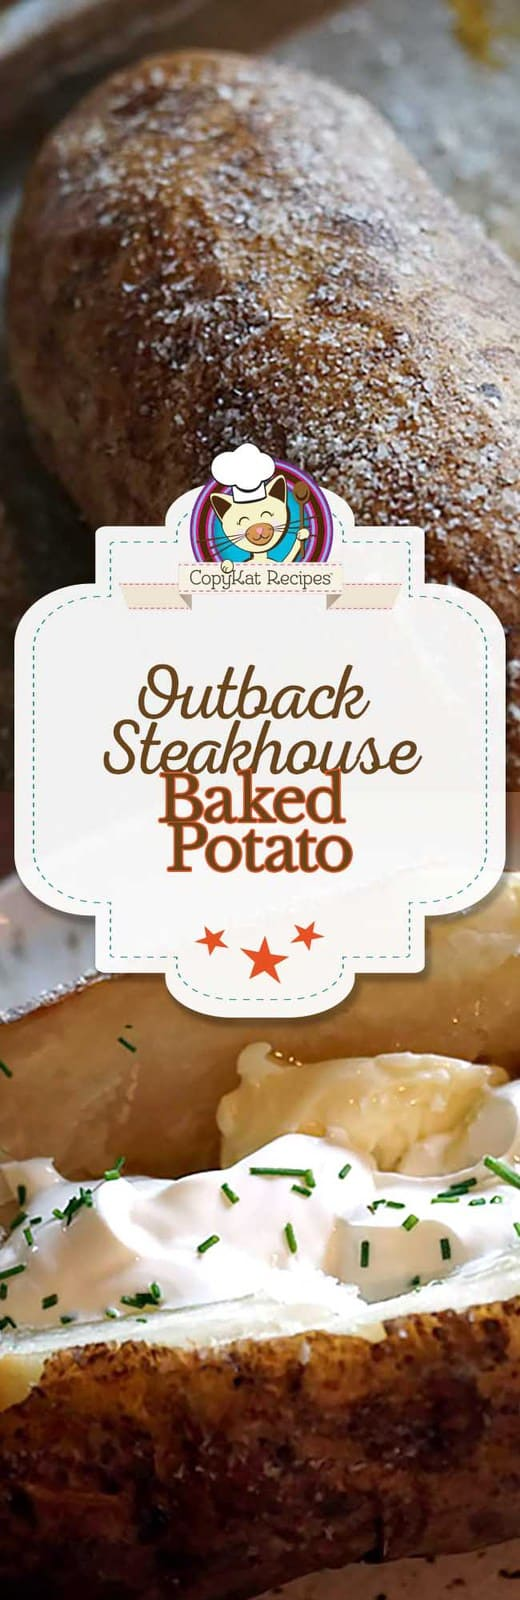 Get the secret to make baked potatoes with the crispy skin you will love.   Make this copycat recipe for the famous Outback Steakhouse baked potato at home.